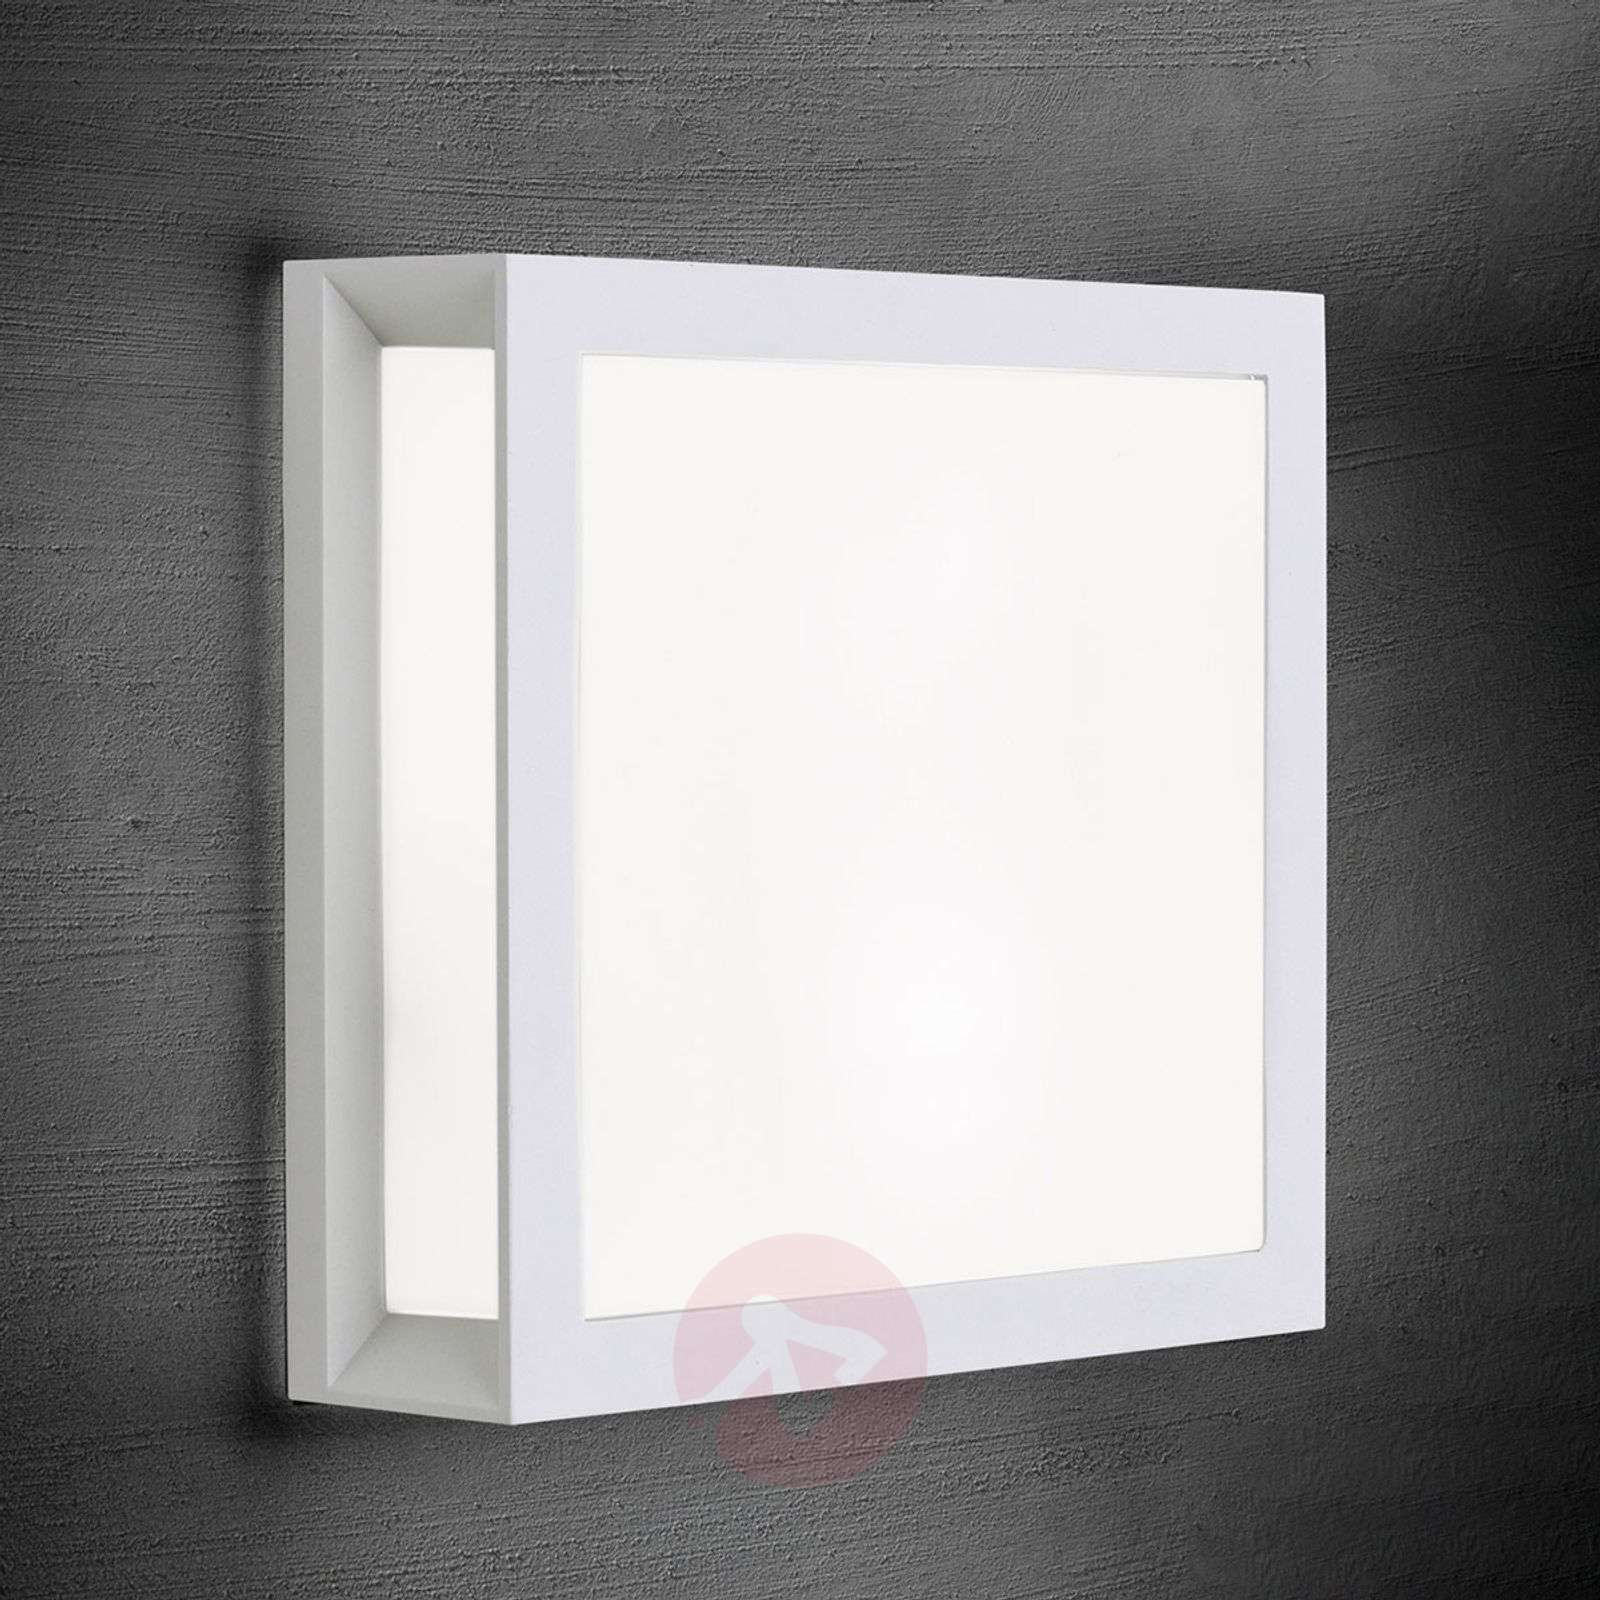 Henry square outdoor wall light in white-7255351-01